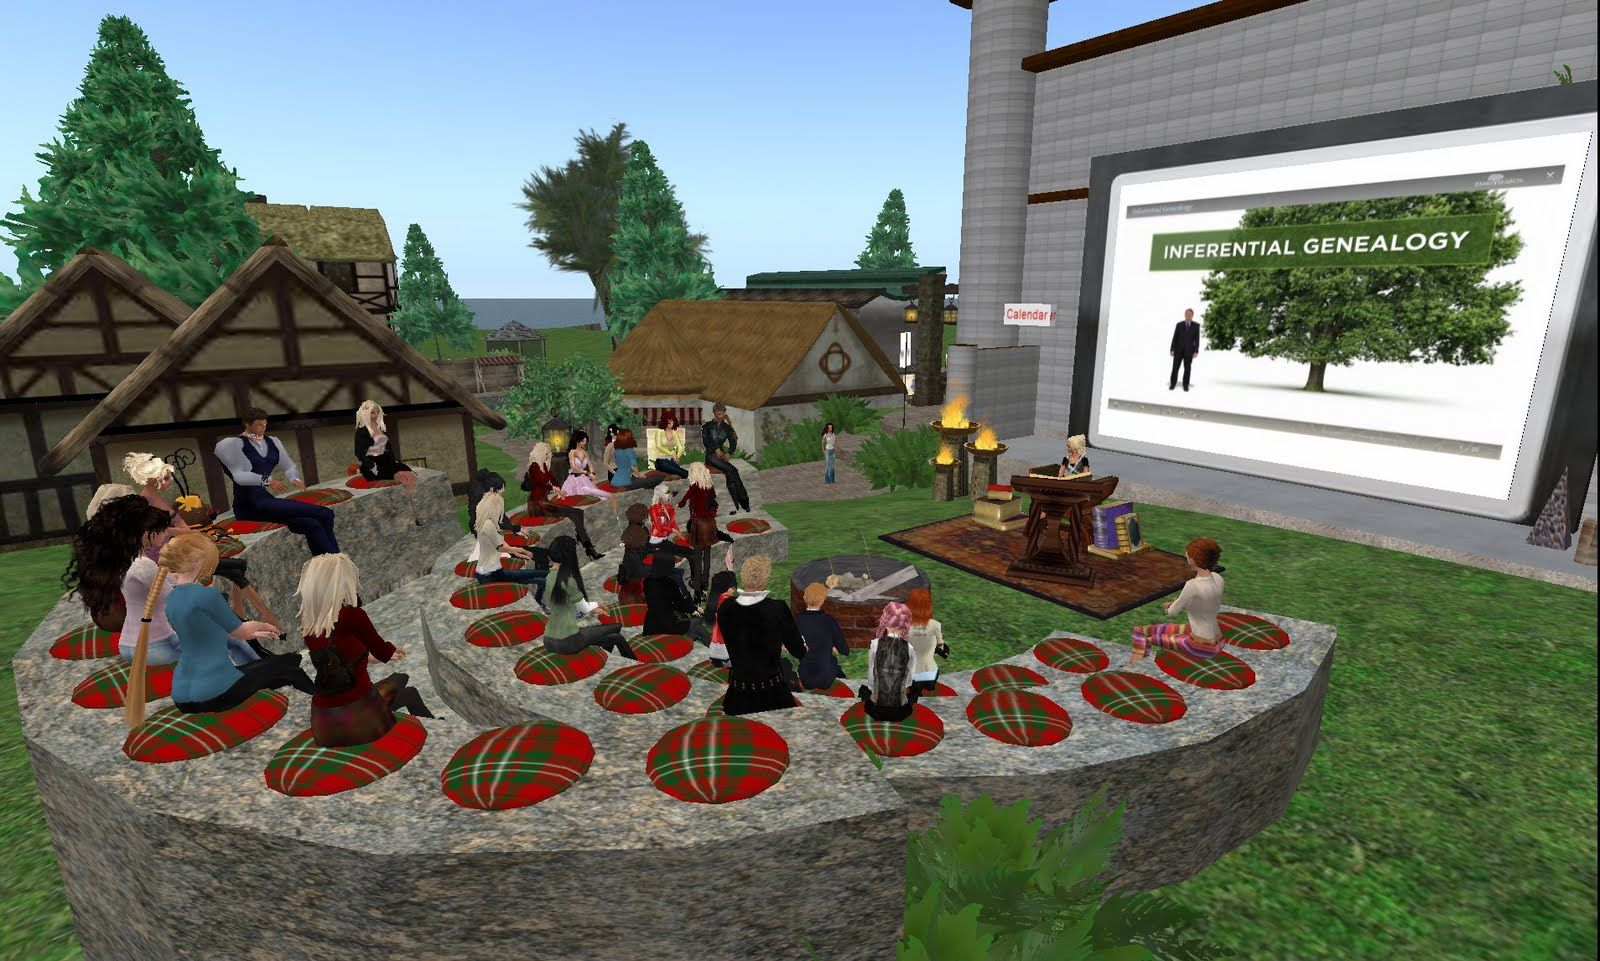 Inferential Genealogy Course in Second Life - Case Study 1 - Don't let any more opportunities go by in capturing the knowledge of your aging family generations, capture it and get it online with our help